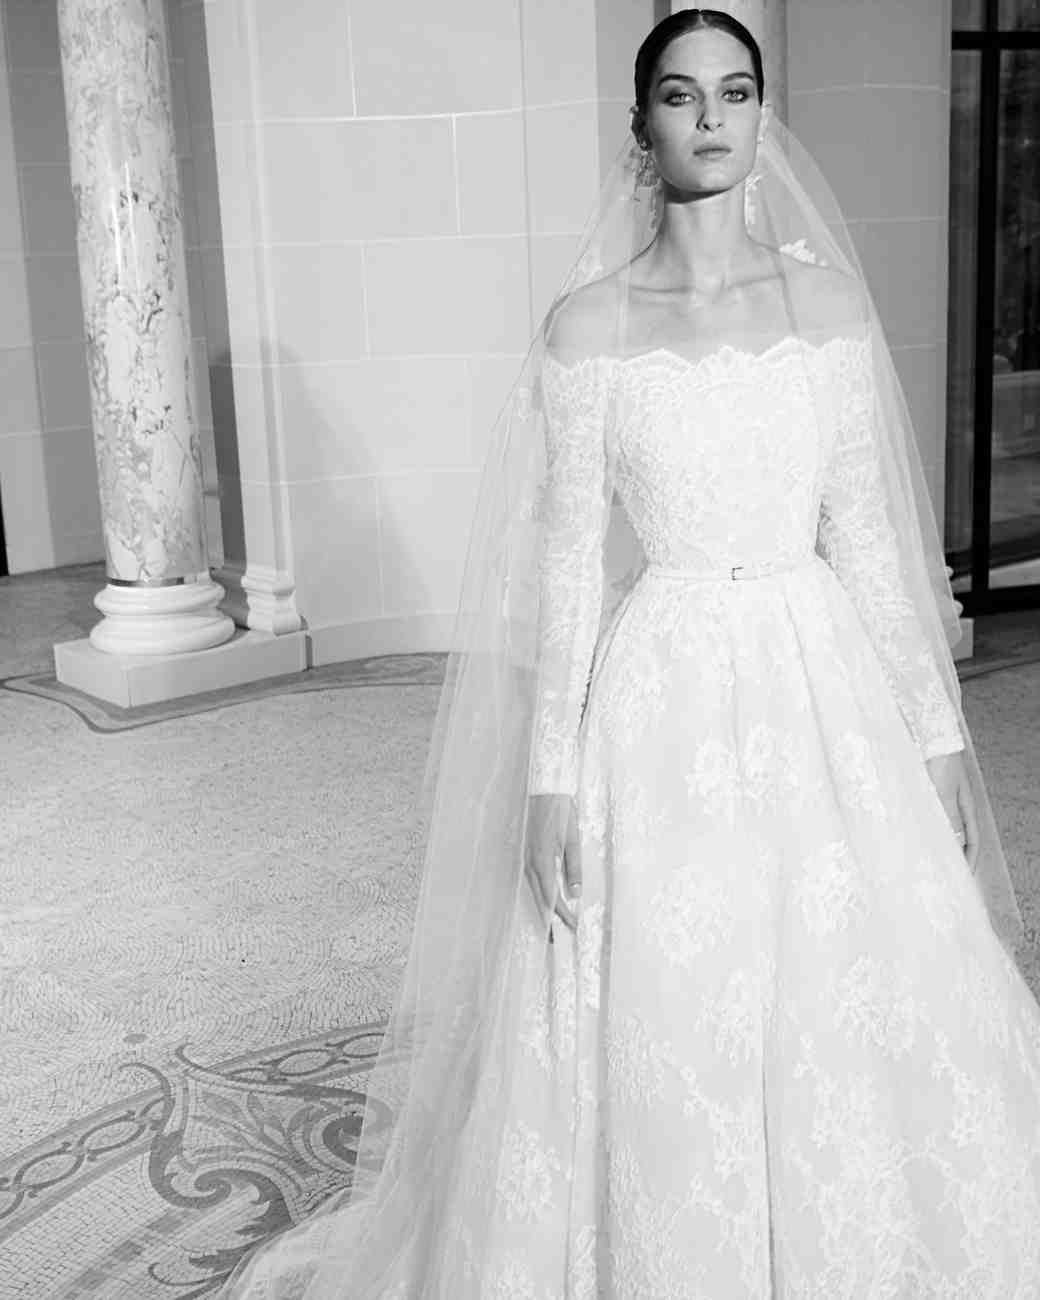 Long Sleeve Wedding Gowns: Long-Sleeved Wedding Dresses We Love